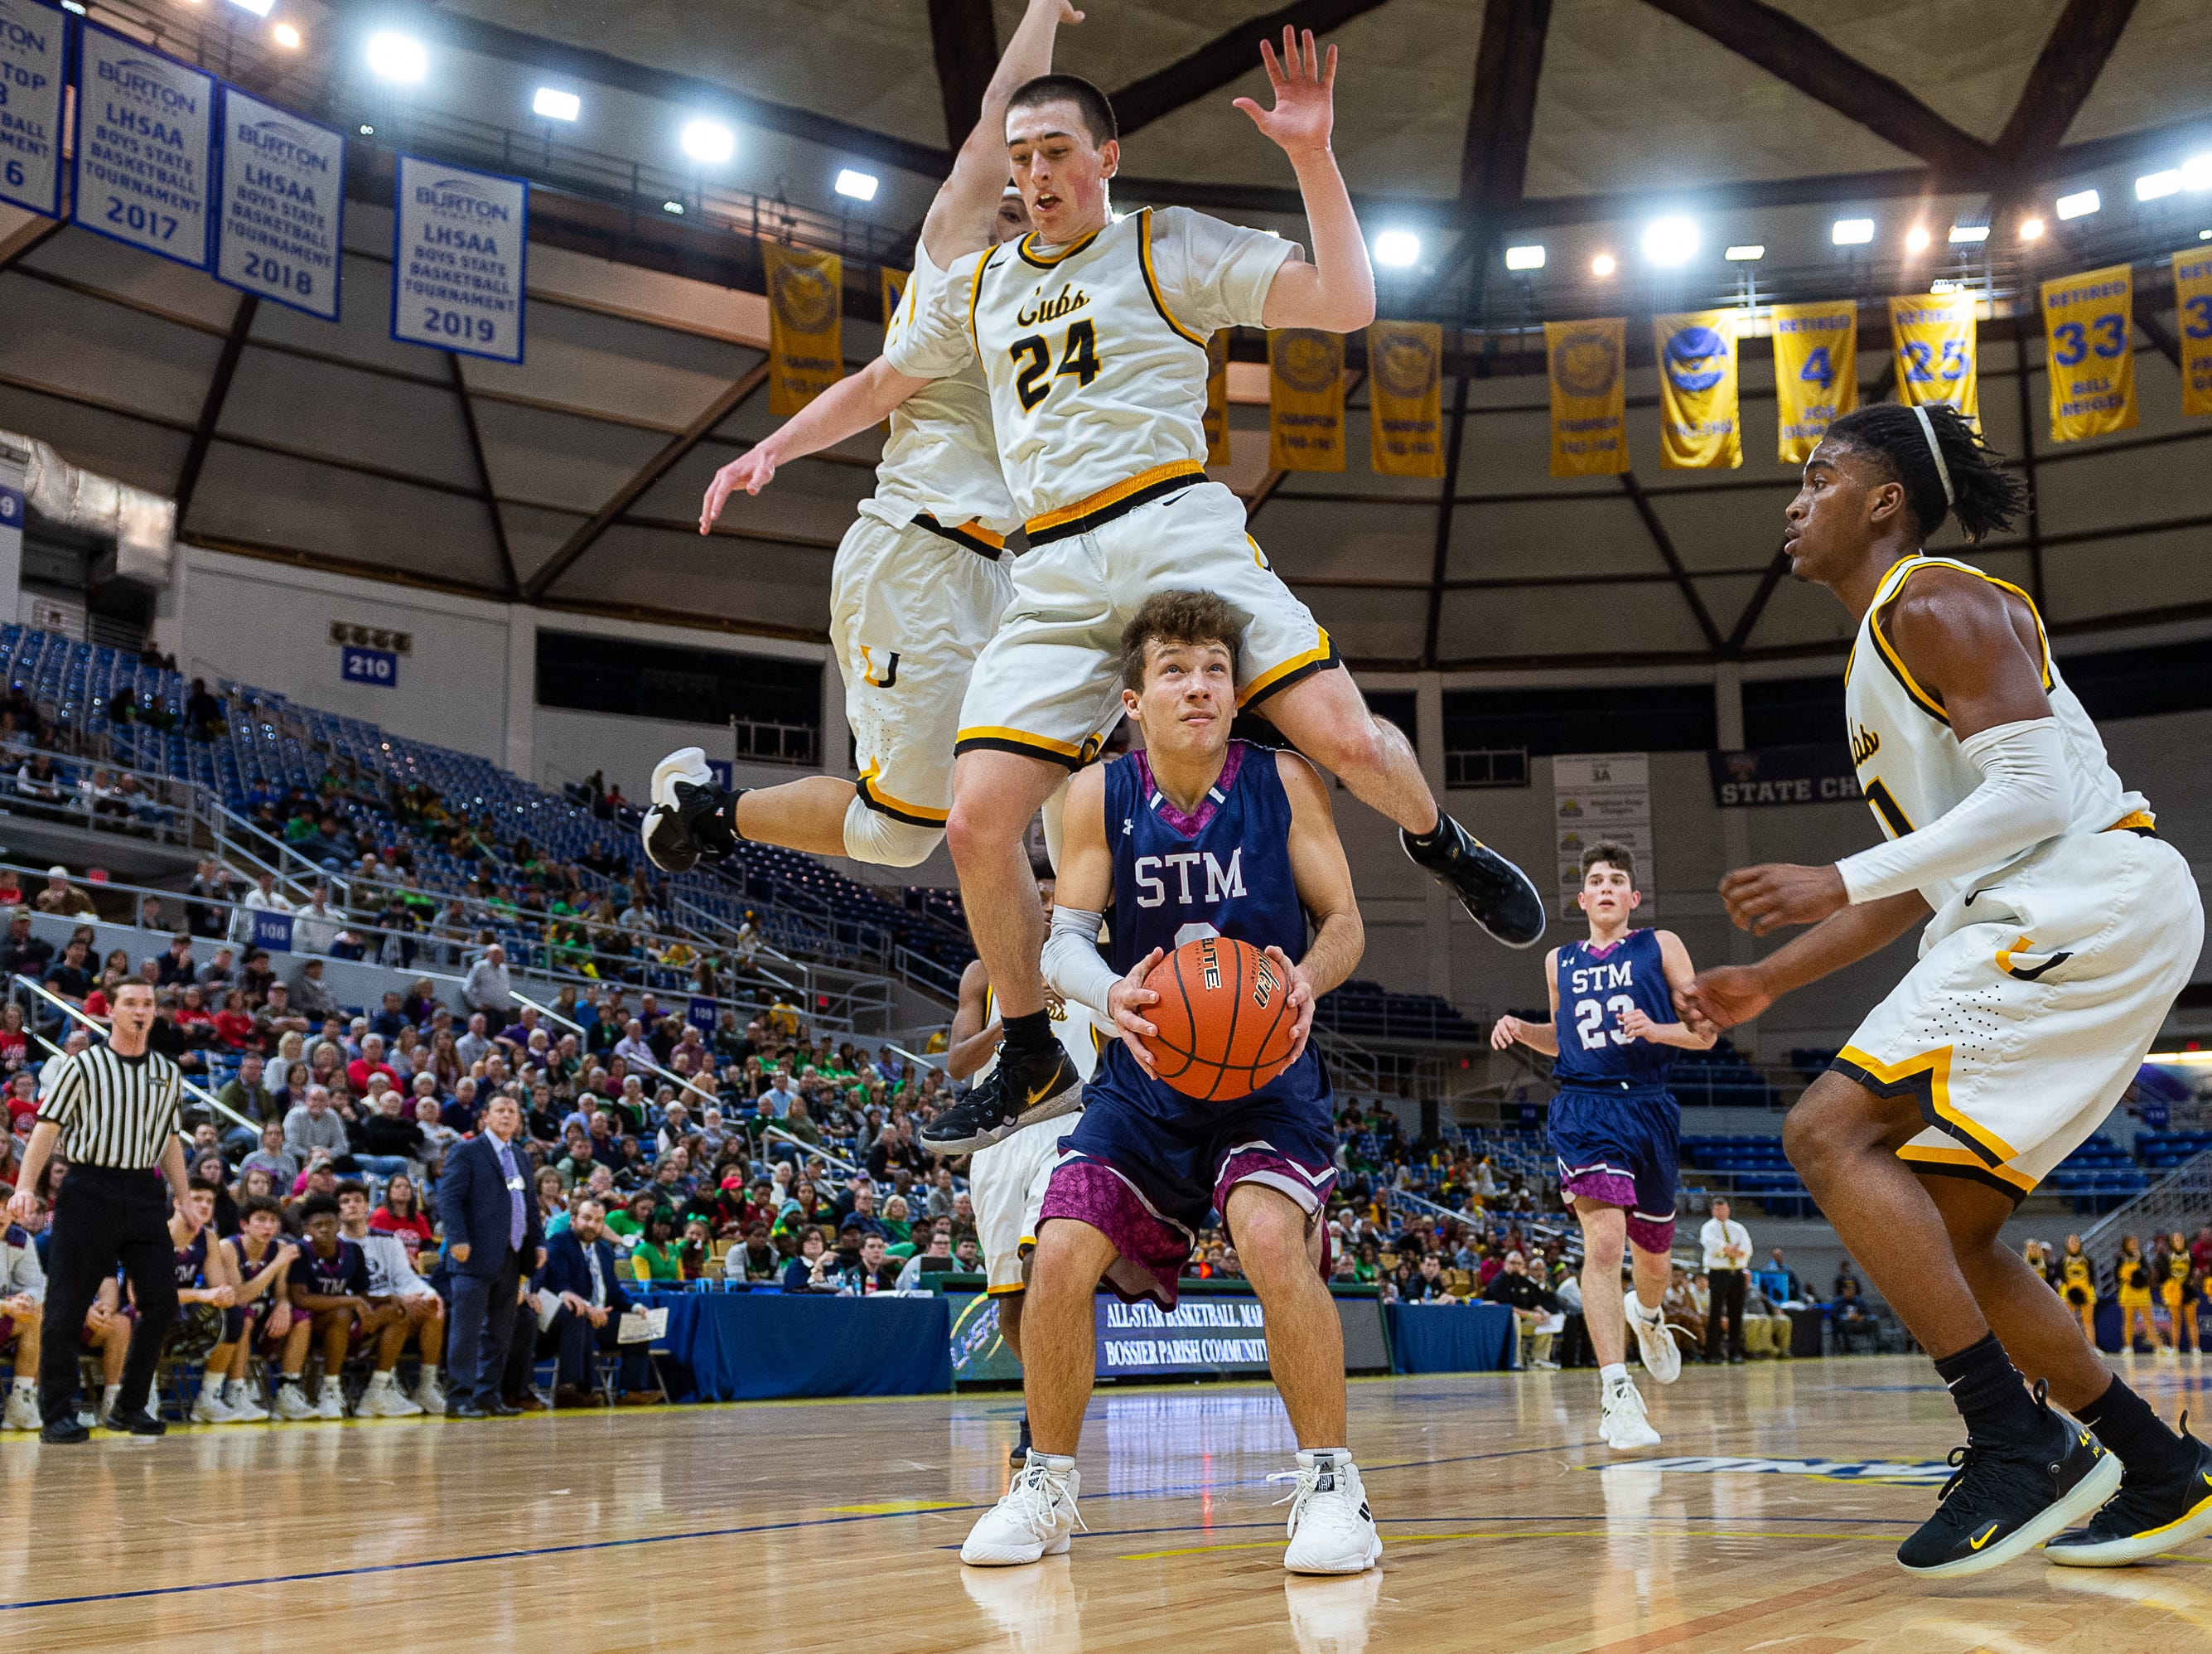 Grant Arceneaux is fouled under the basket as STM takes down University High in the semi final round of the LHSAA Basketball State Championships. Wednesday, March 6, 2019.